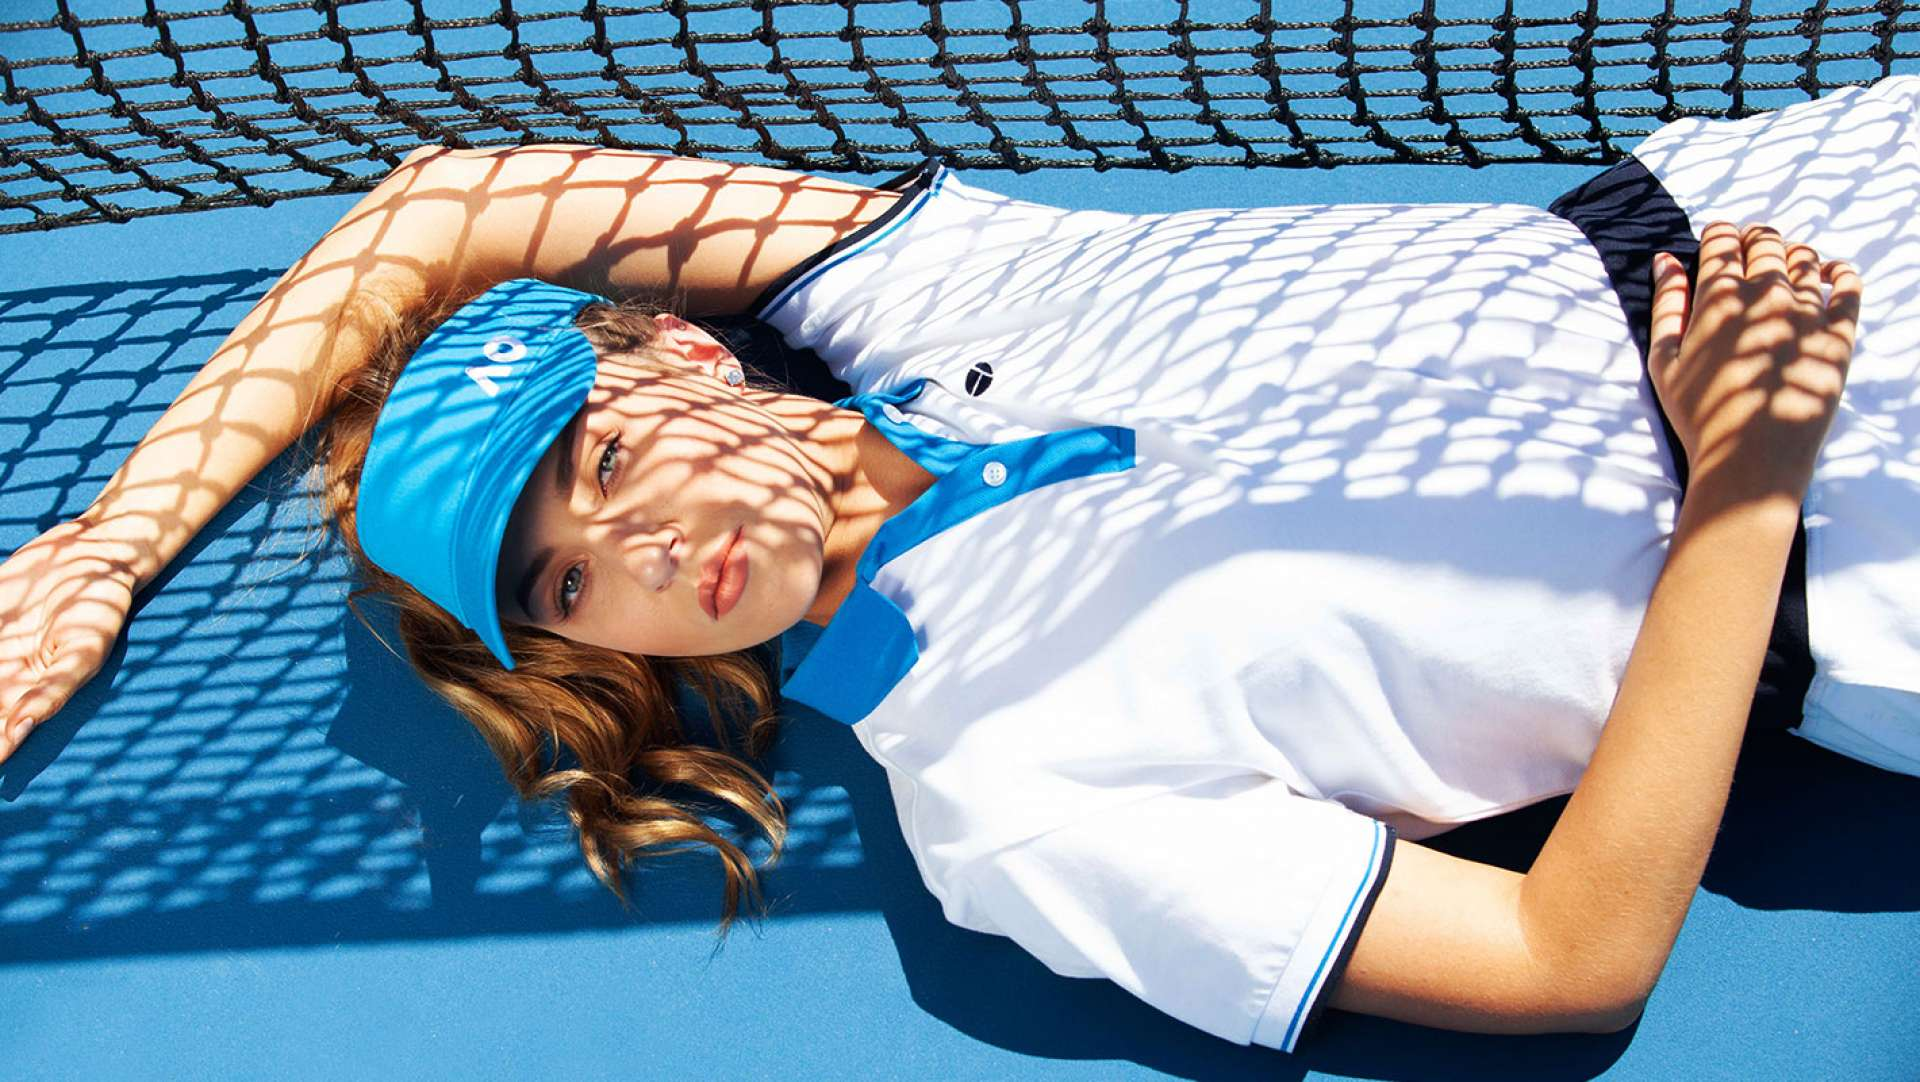 Australian Open 2019 Fashion Heritage Range Photoshoot 01